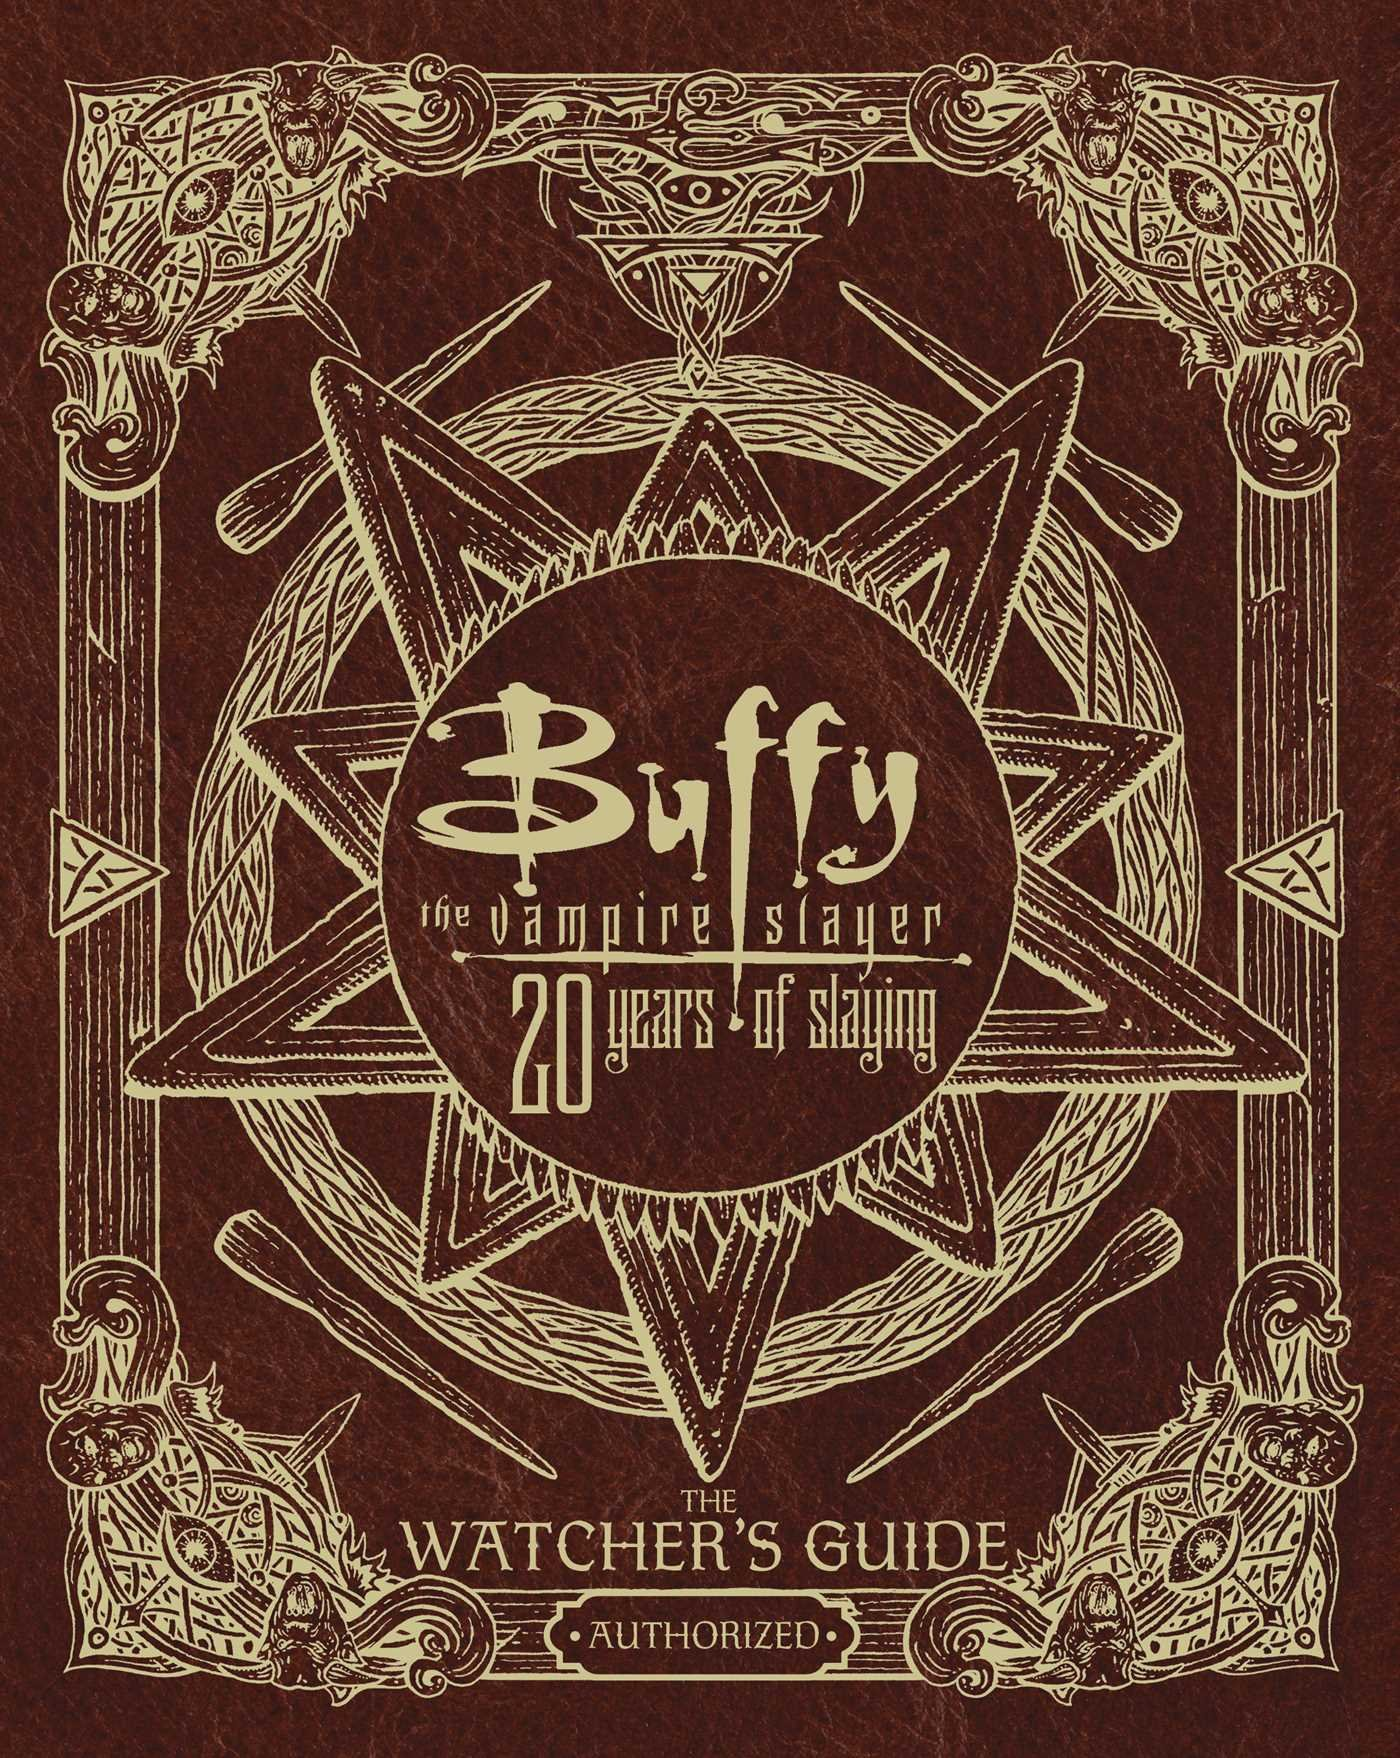 Amazon.com: Buffy the Vampire Slayer 20 Years of Slaying: The Watcher's  Guide Authorized (9781534404151): Christopher Golden: Books